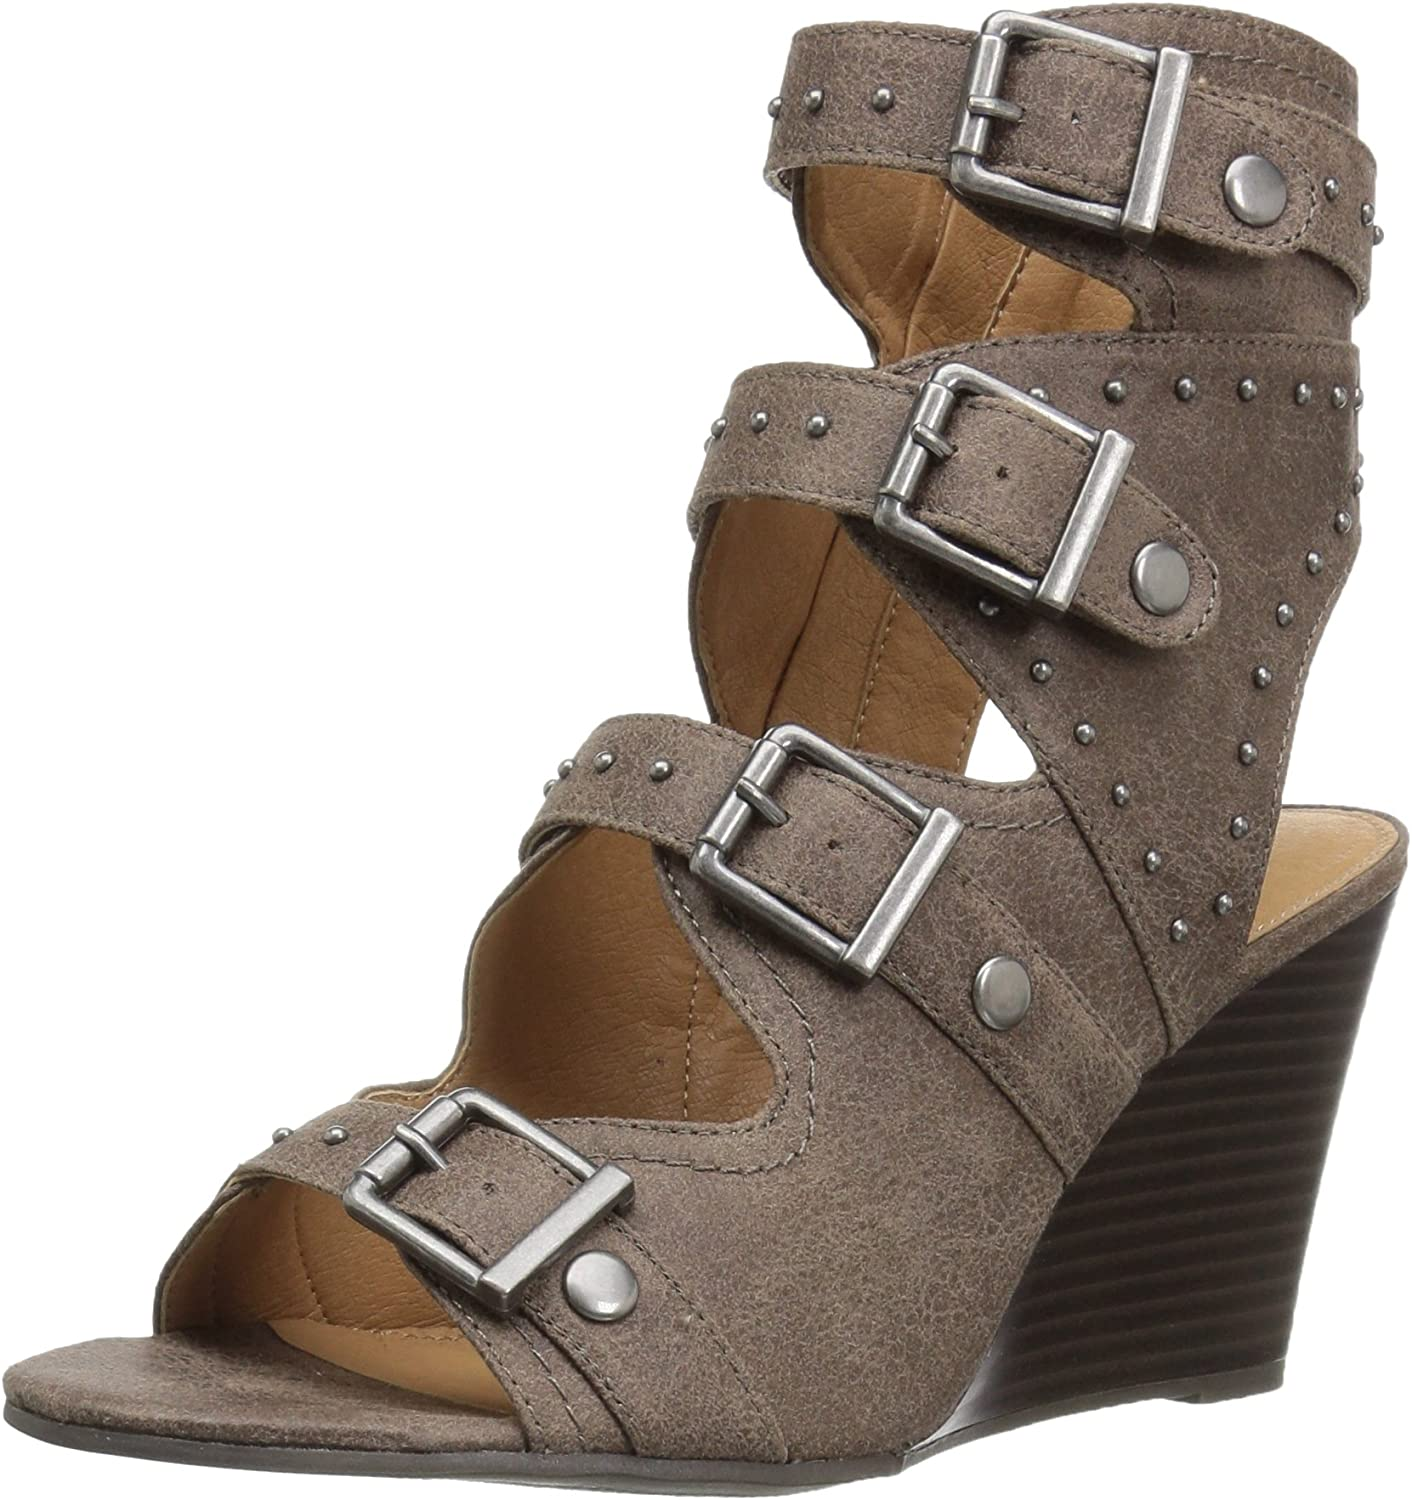 Sugar Womens Hucklebaby Wedge Sandal